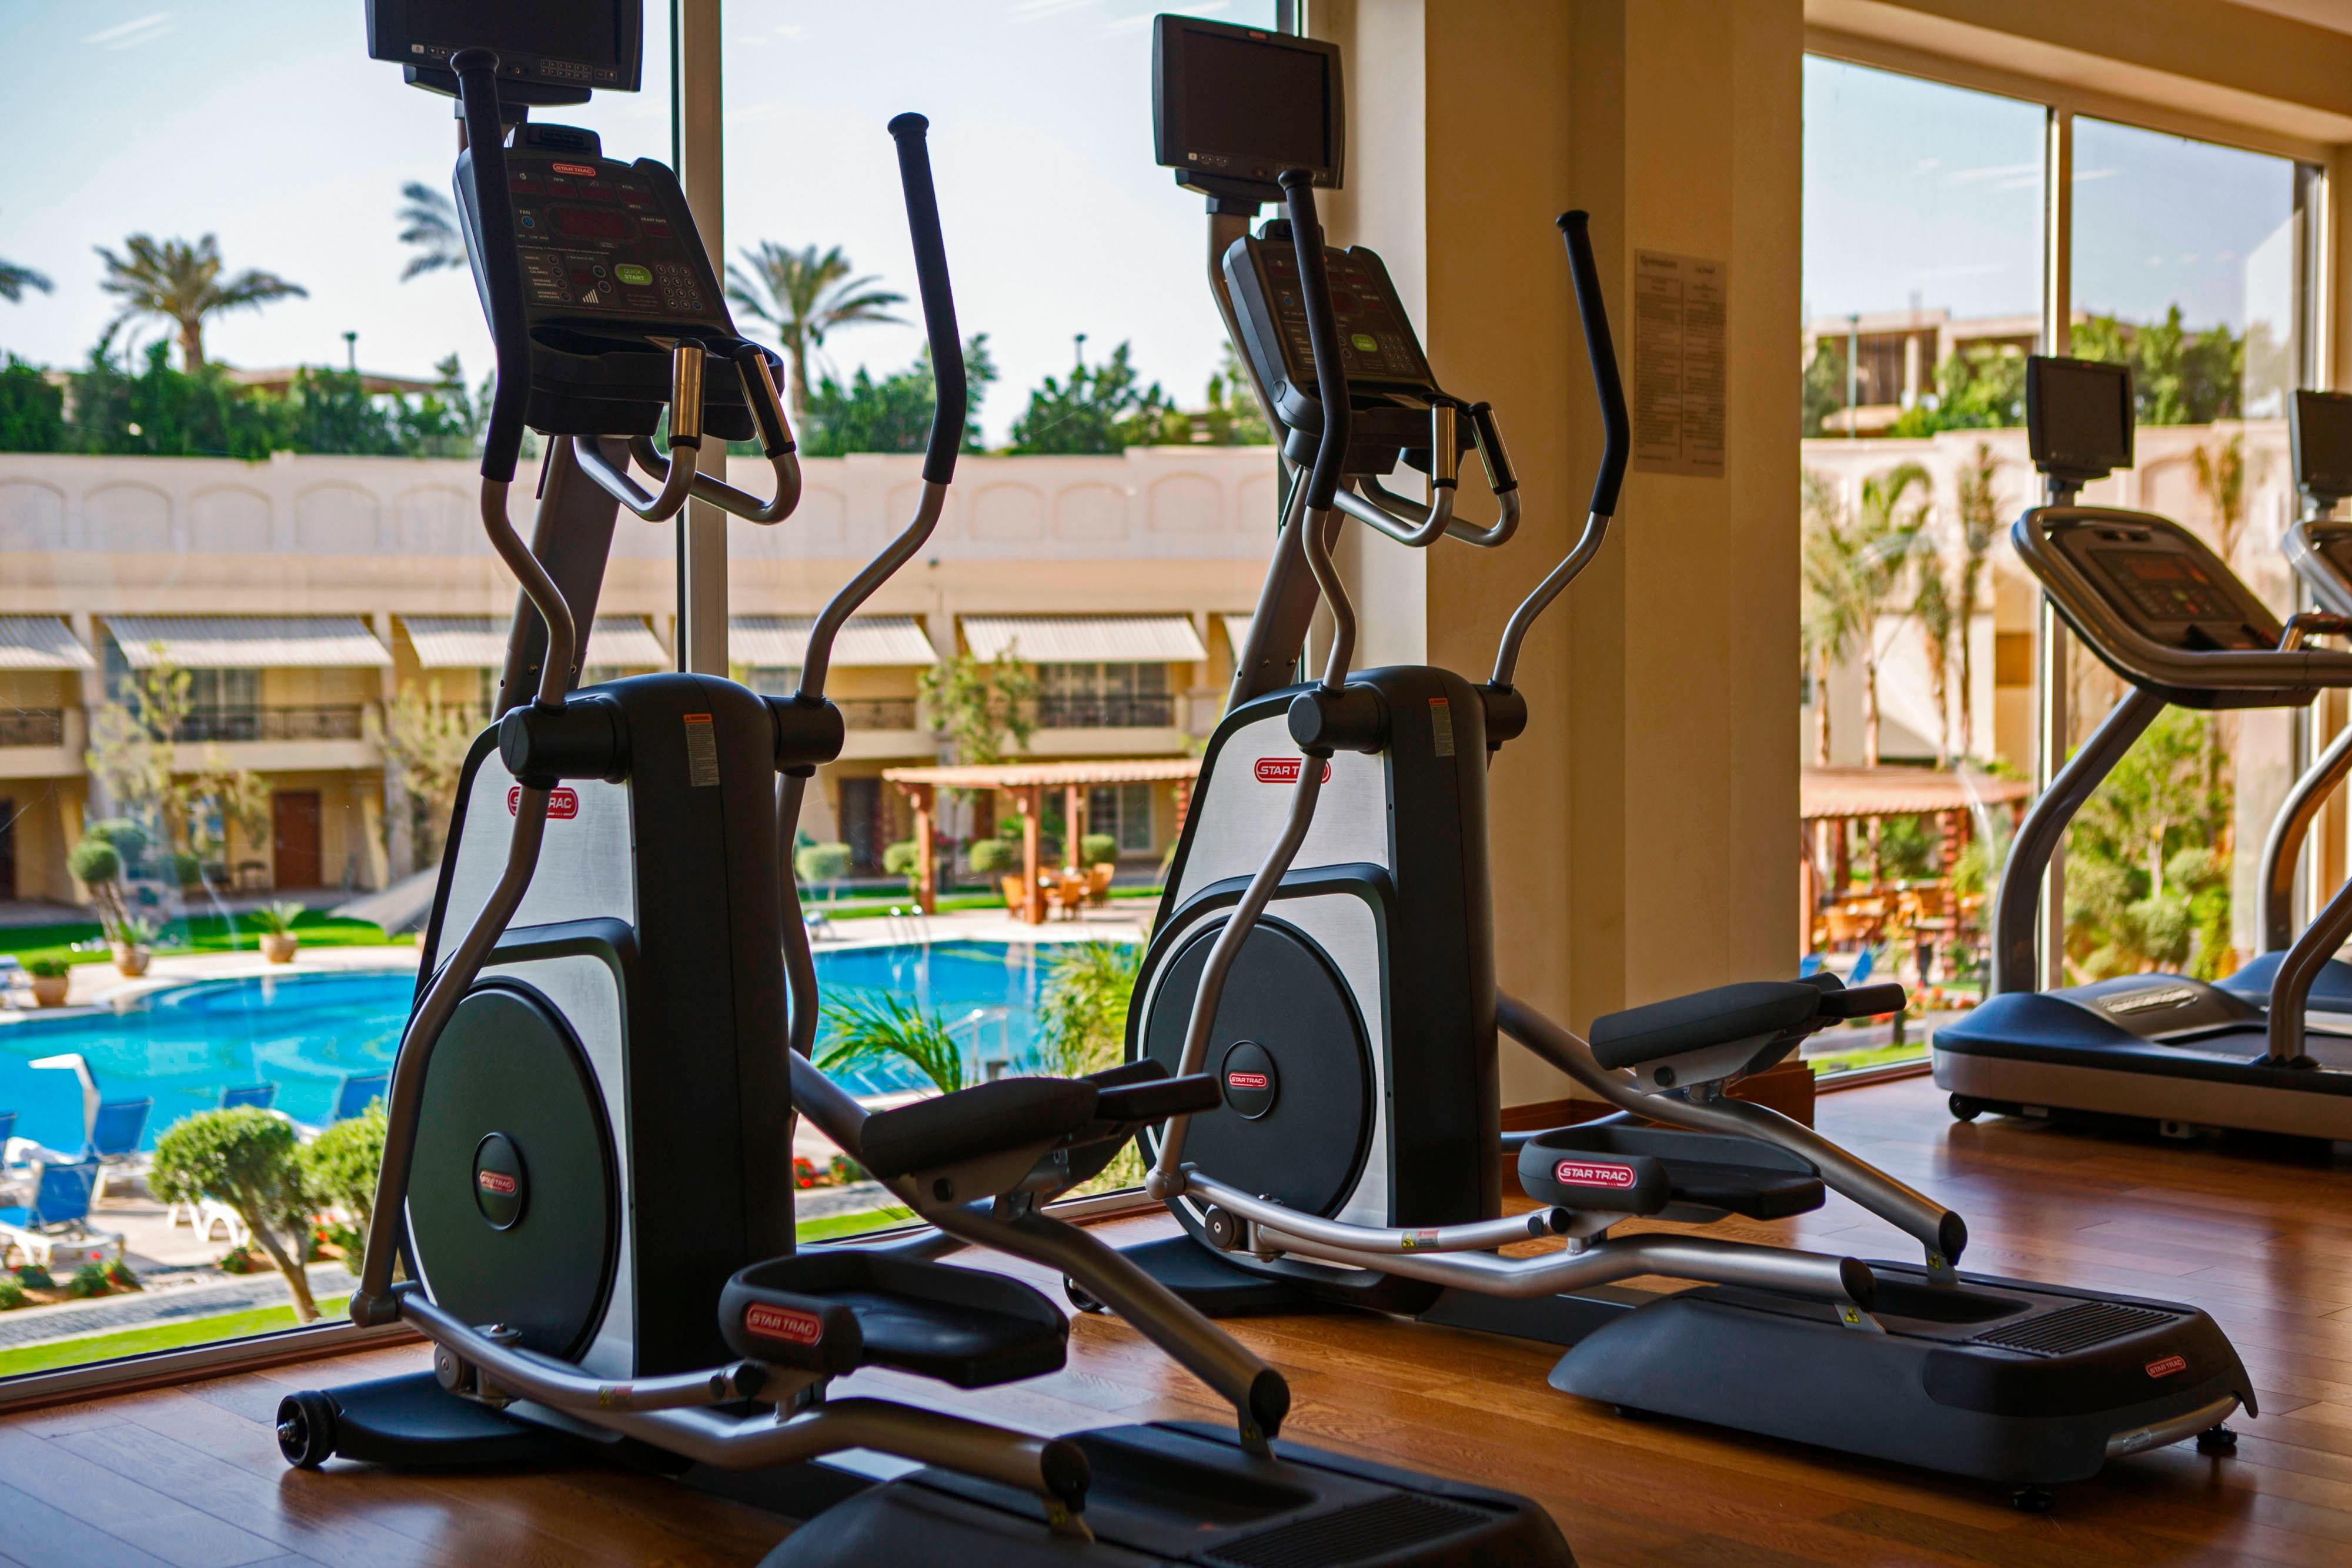 Cairo hotel fitness center